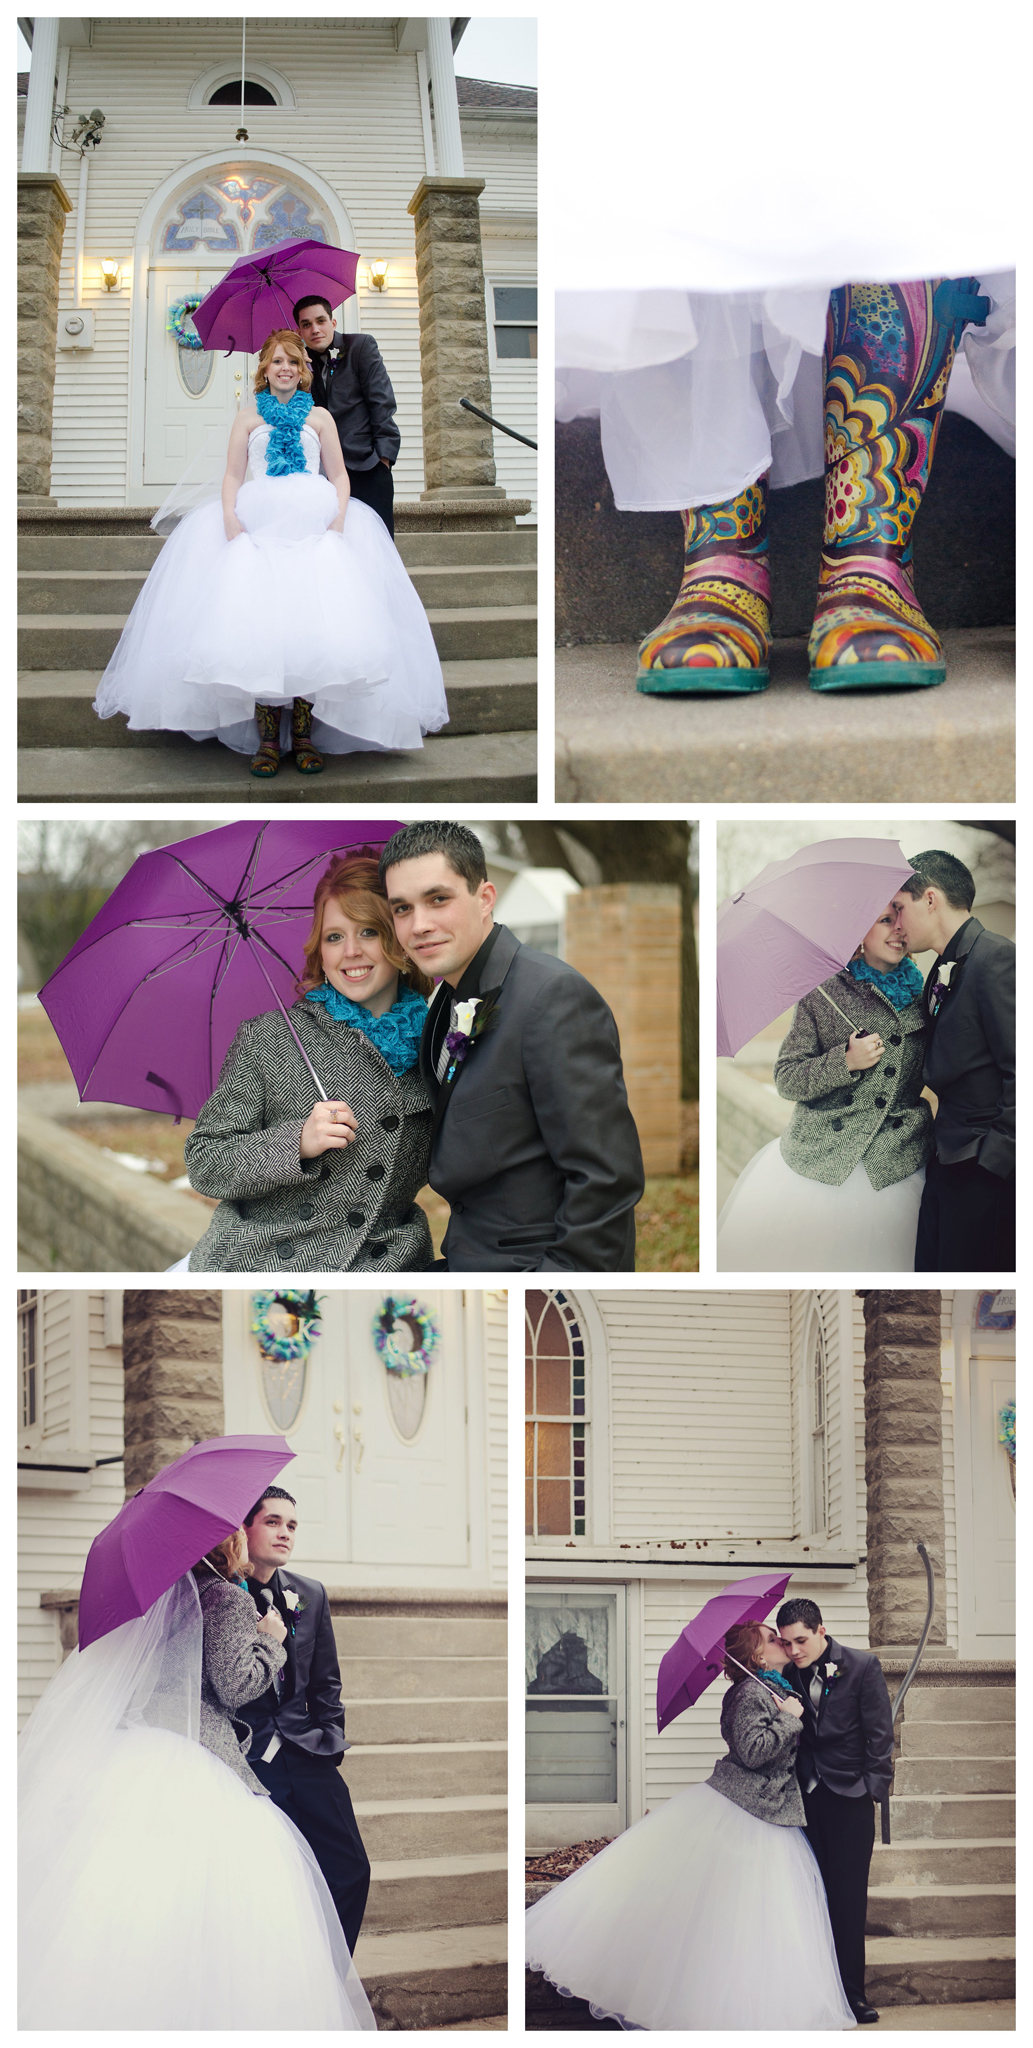 Umbrella and Rainboots Wedding Photo by Johnson County Wedding Photographer Brittany Tarchala